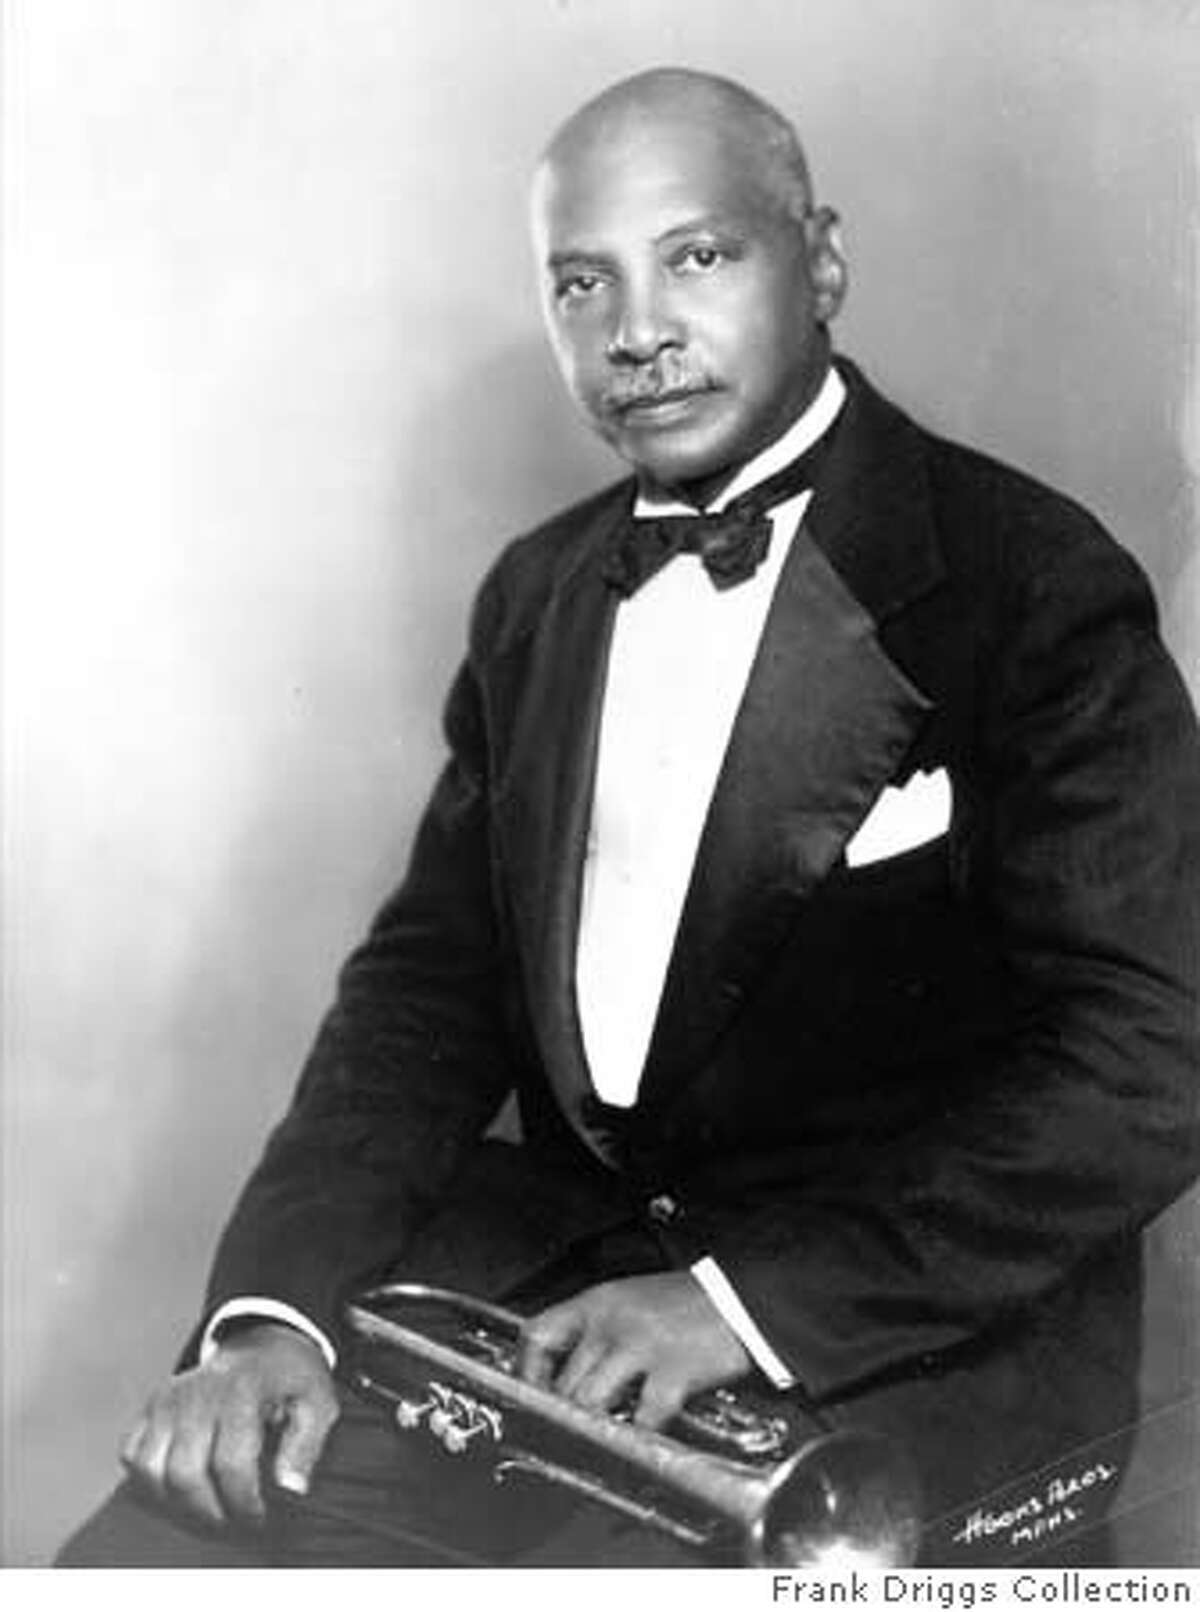 For BLUES21, datebook ; THE BLUES� �Warming by the Devil�s Fire� ; In 1903, composer W.C. Handy (pictured) stumbled upon �the strangest music [he] had ever heard� while waiting for a train in Tutwiler, Mississippi. Handy has since been named �Father of the Blues�; in recognition of the centennial of his discovery, Congress declared 2003 the YEAR OF THE BLUES. Photo: Frank Driggs Collection (10/1/03, 9:00 p.m. ET, 2 hours) ; on 6/13/03 in . Frank Driggs Collection / Frank Driggs Collection